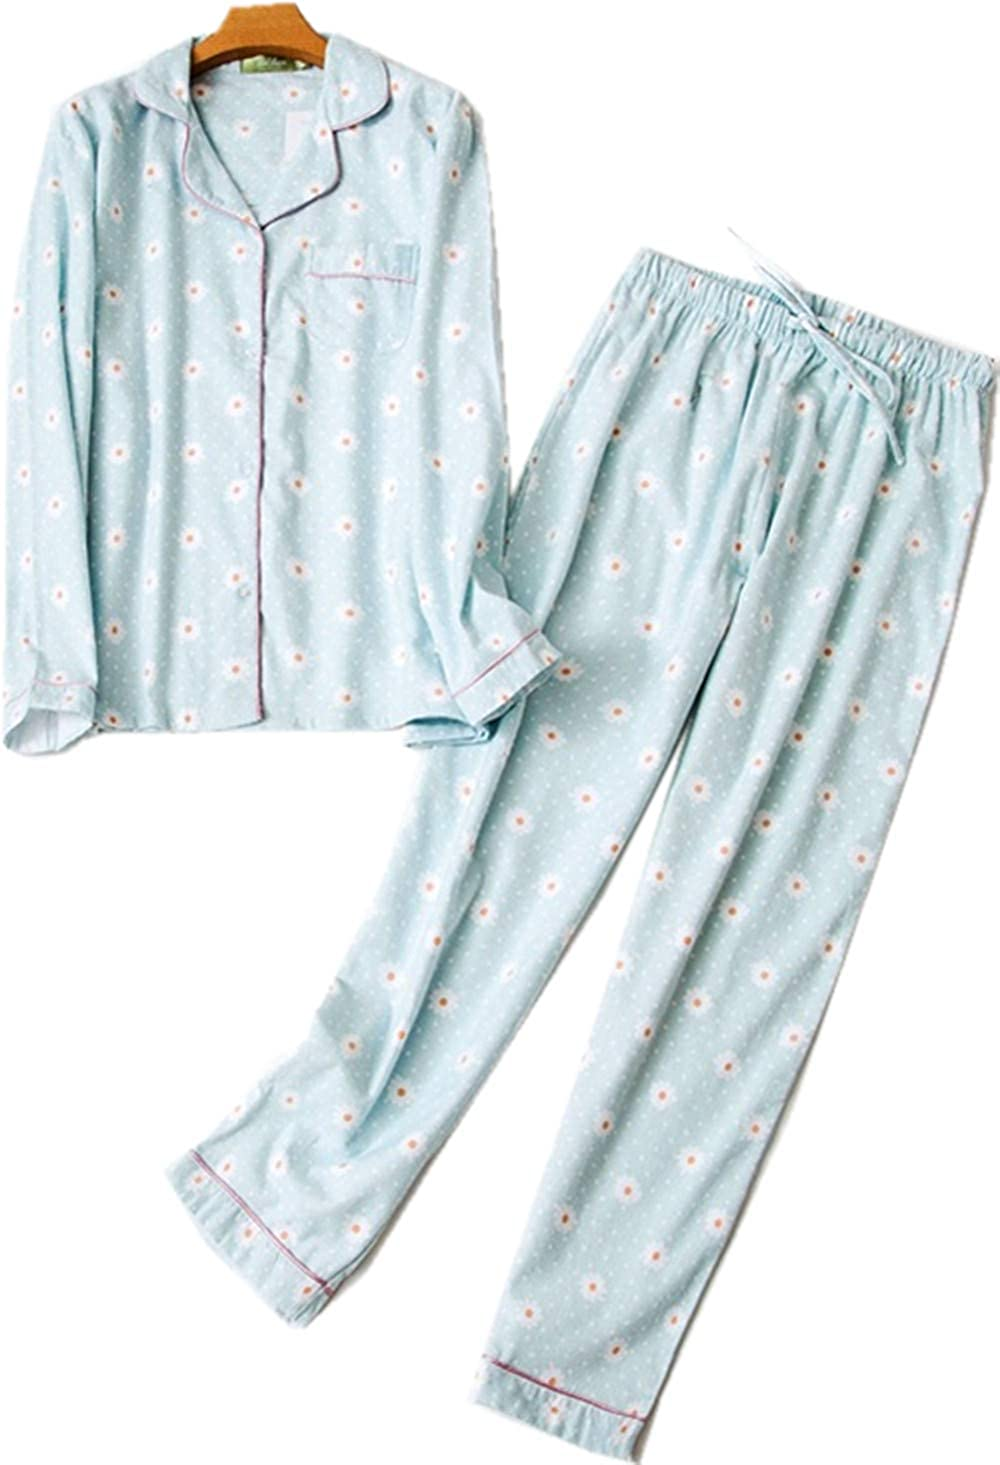 dfb1b1a709 Amazon.com  Women s Cozy Fleece Pajamas Cotton Flannel Pj Set 2-Piece  Sleepwear Long Sleeve Loungewear  Clothing